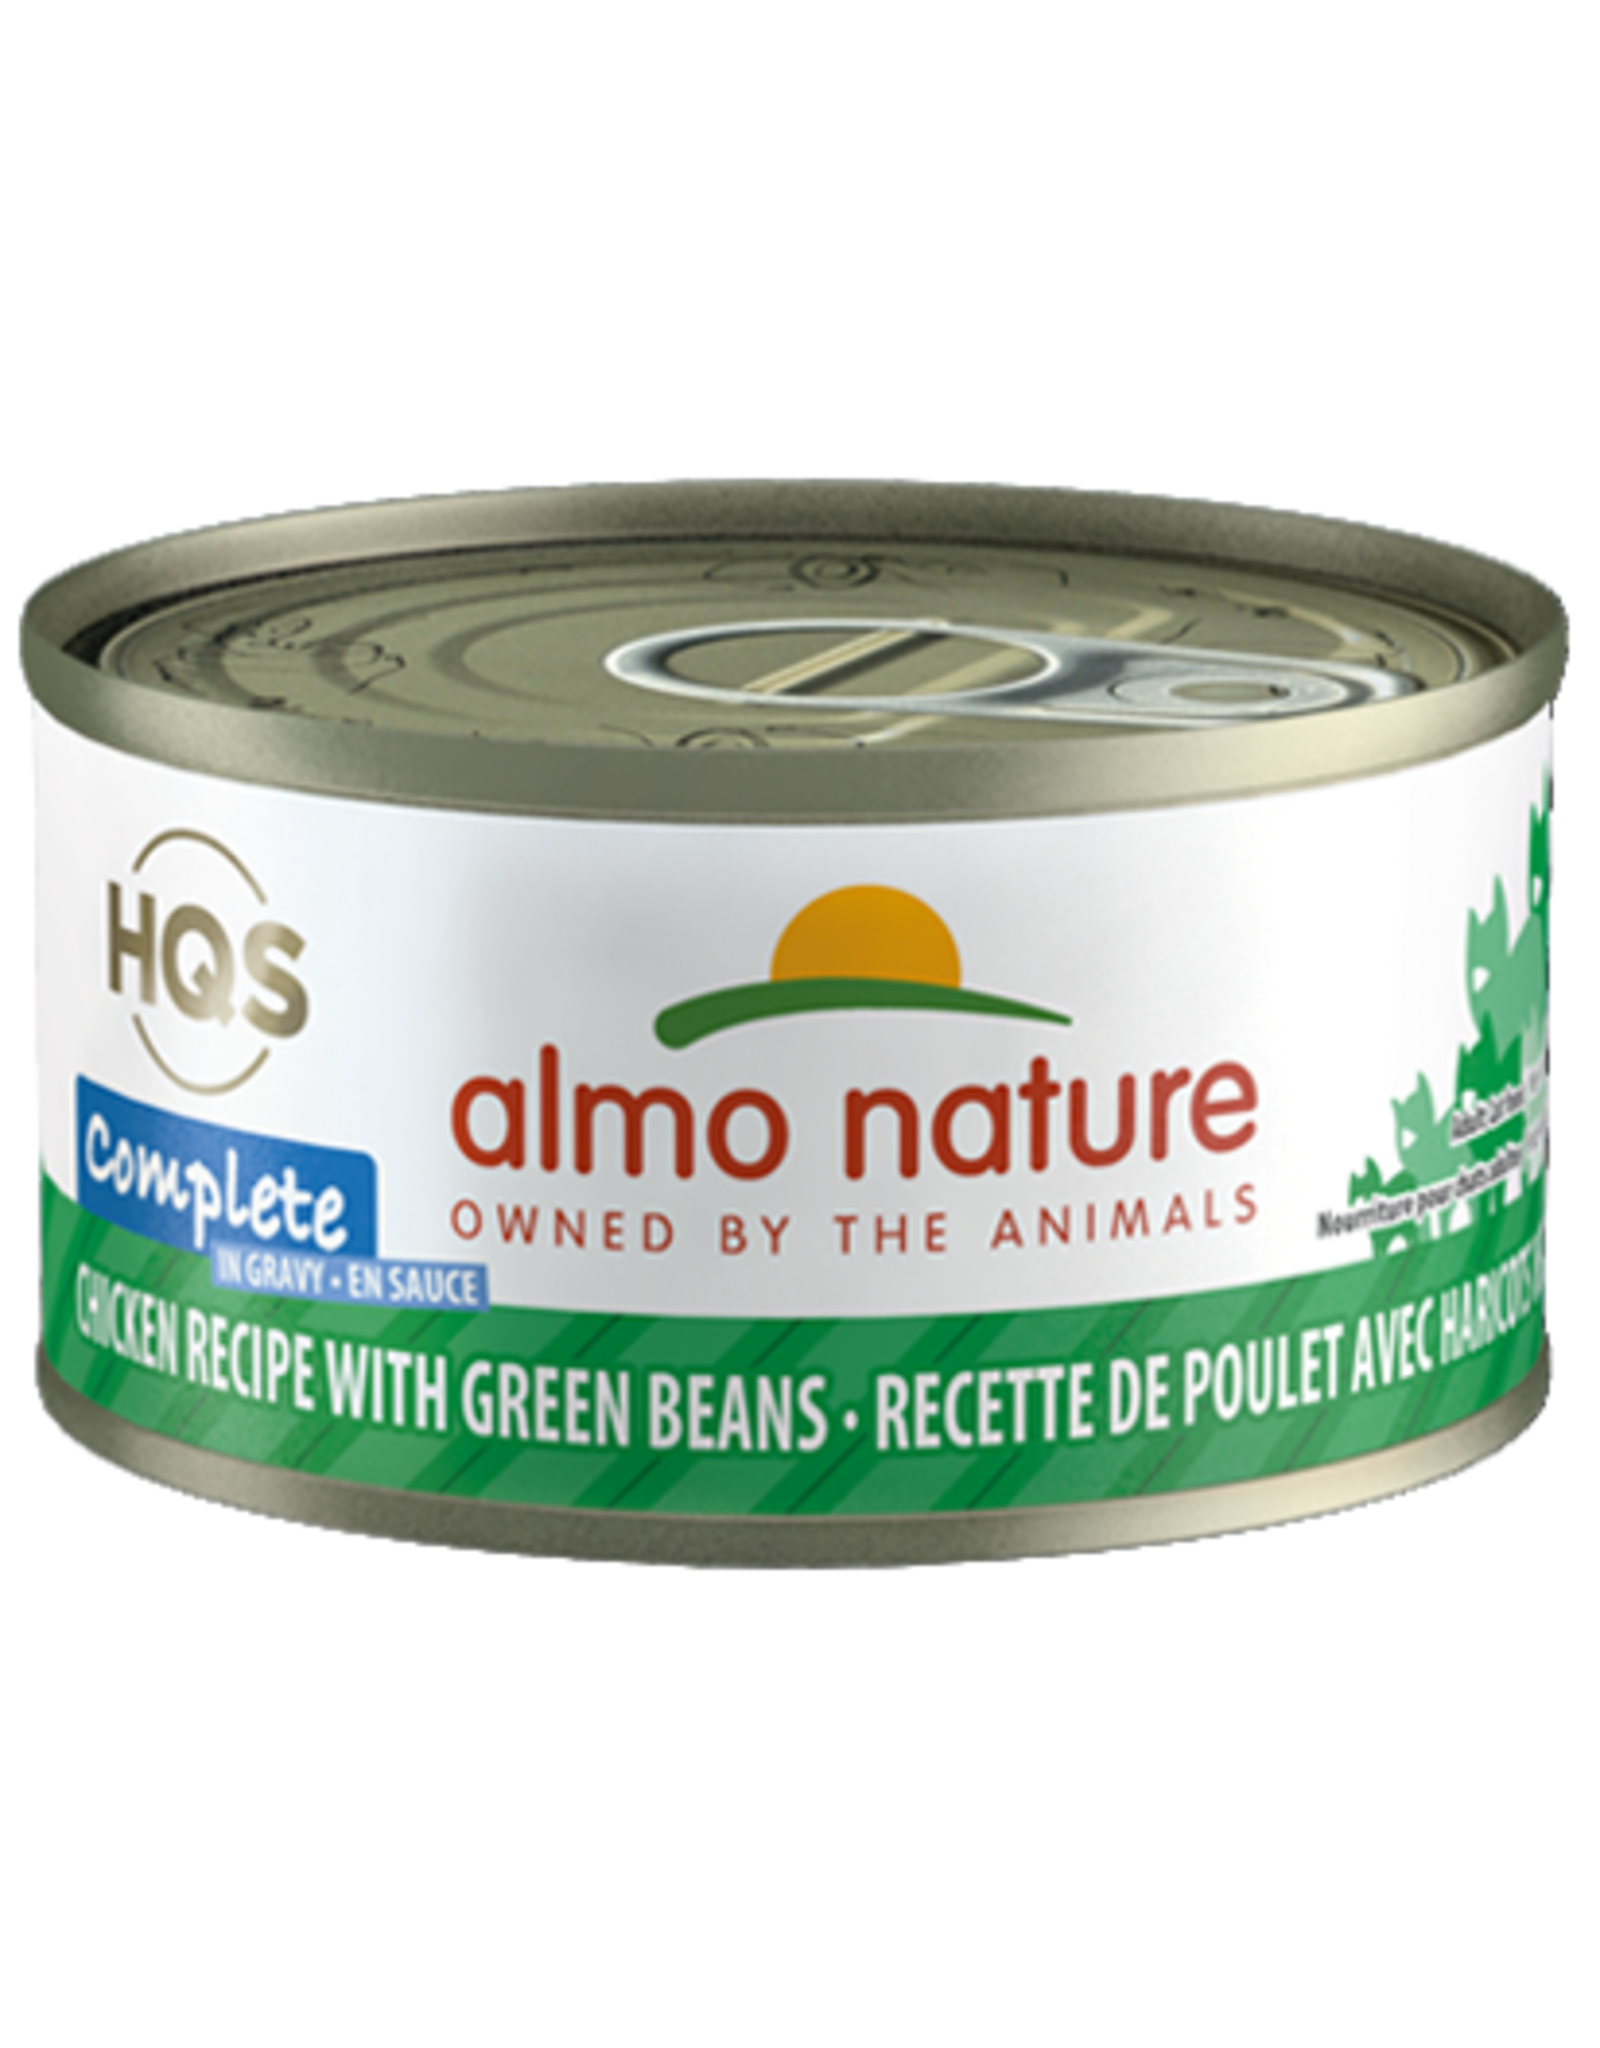 Almo Nature Almo Nature HQS Complete Wet Cat Food Chicken Recipe with Green Beans in Gravy 2.47oz Can Grain Free